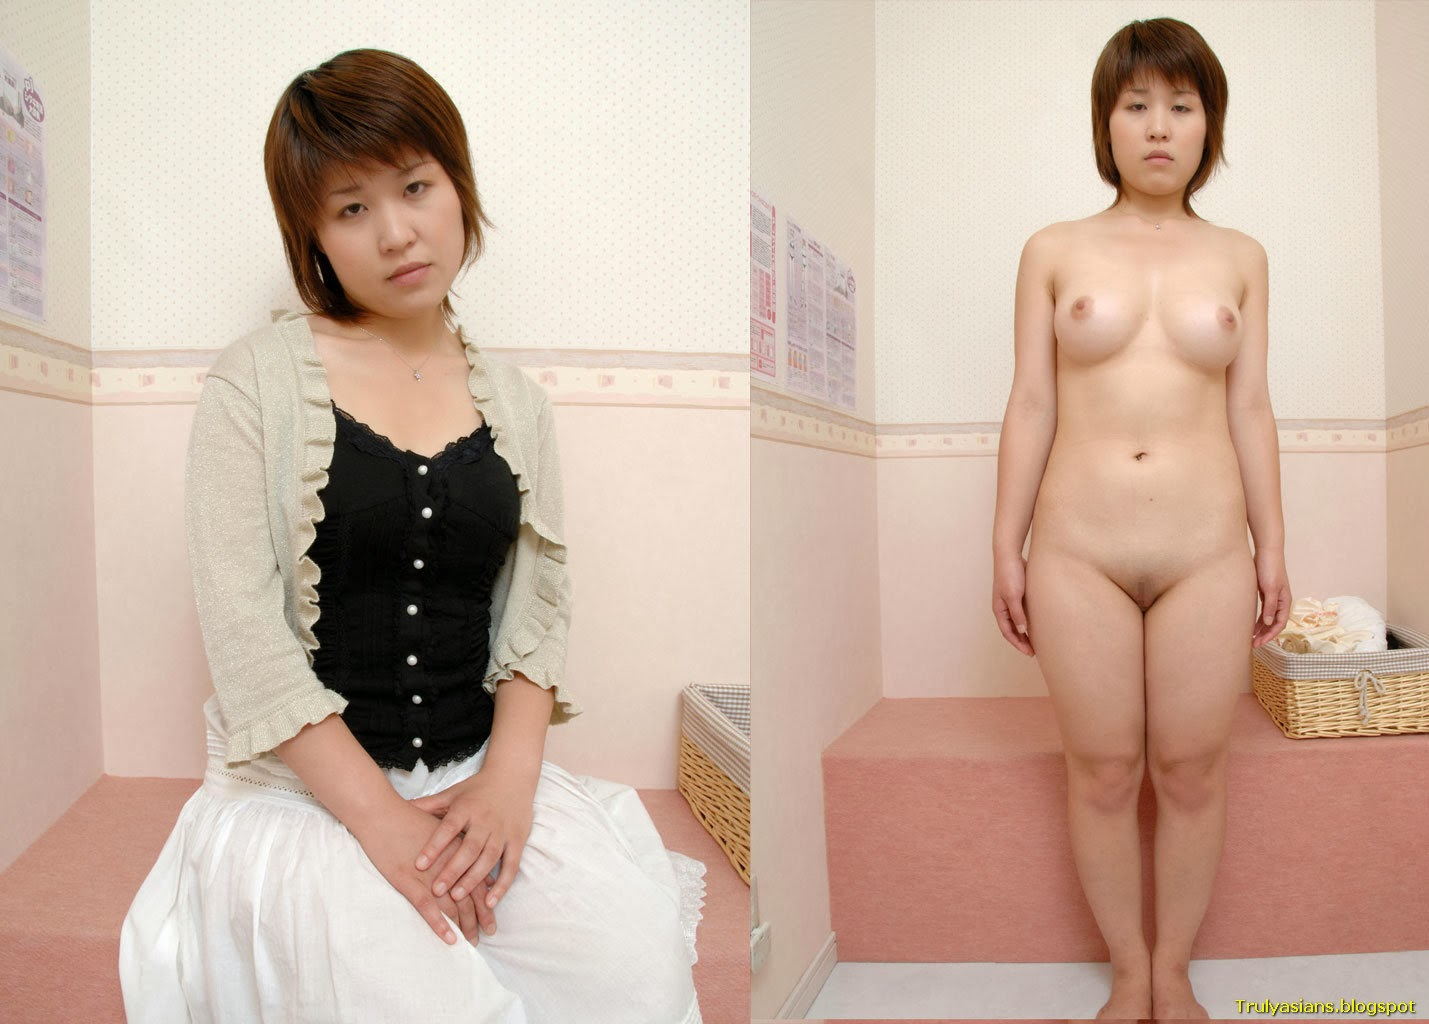 asian dressedundressed series Granny Dressed Undressed Asian Appealing Truly Asians Japanese Amateur Ladies Posing Dressed And Undressed 103 Pics